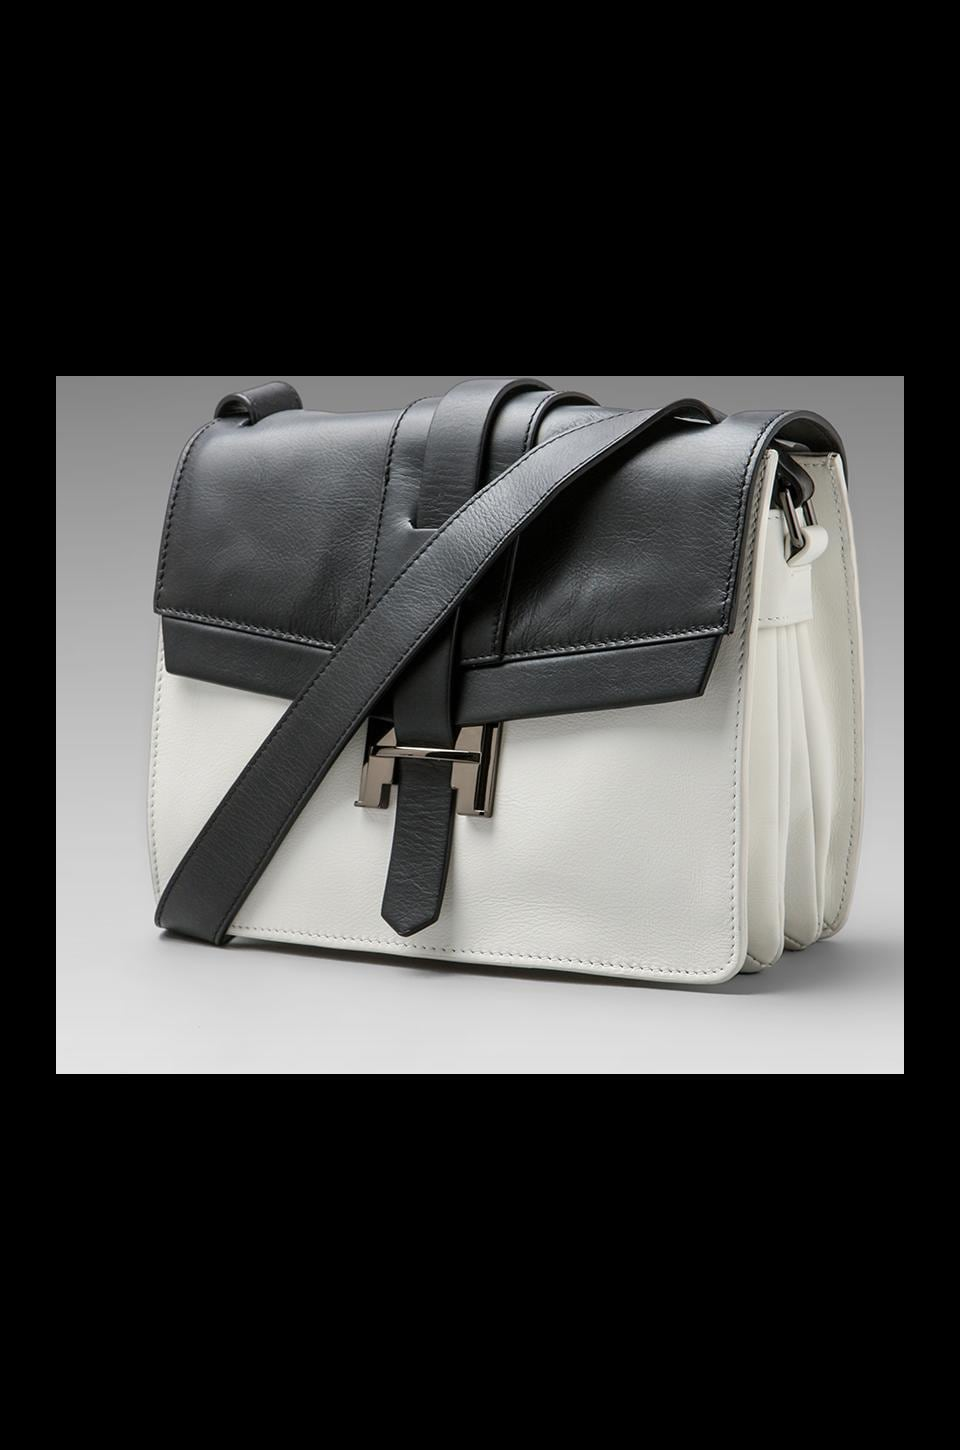 Halston Heritage Short Shoulder Bag in Black and White